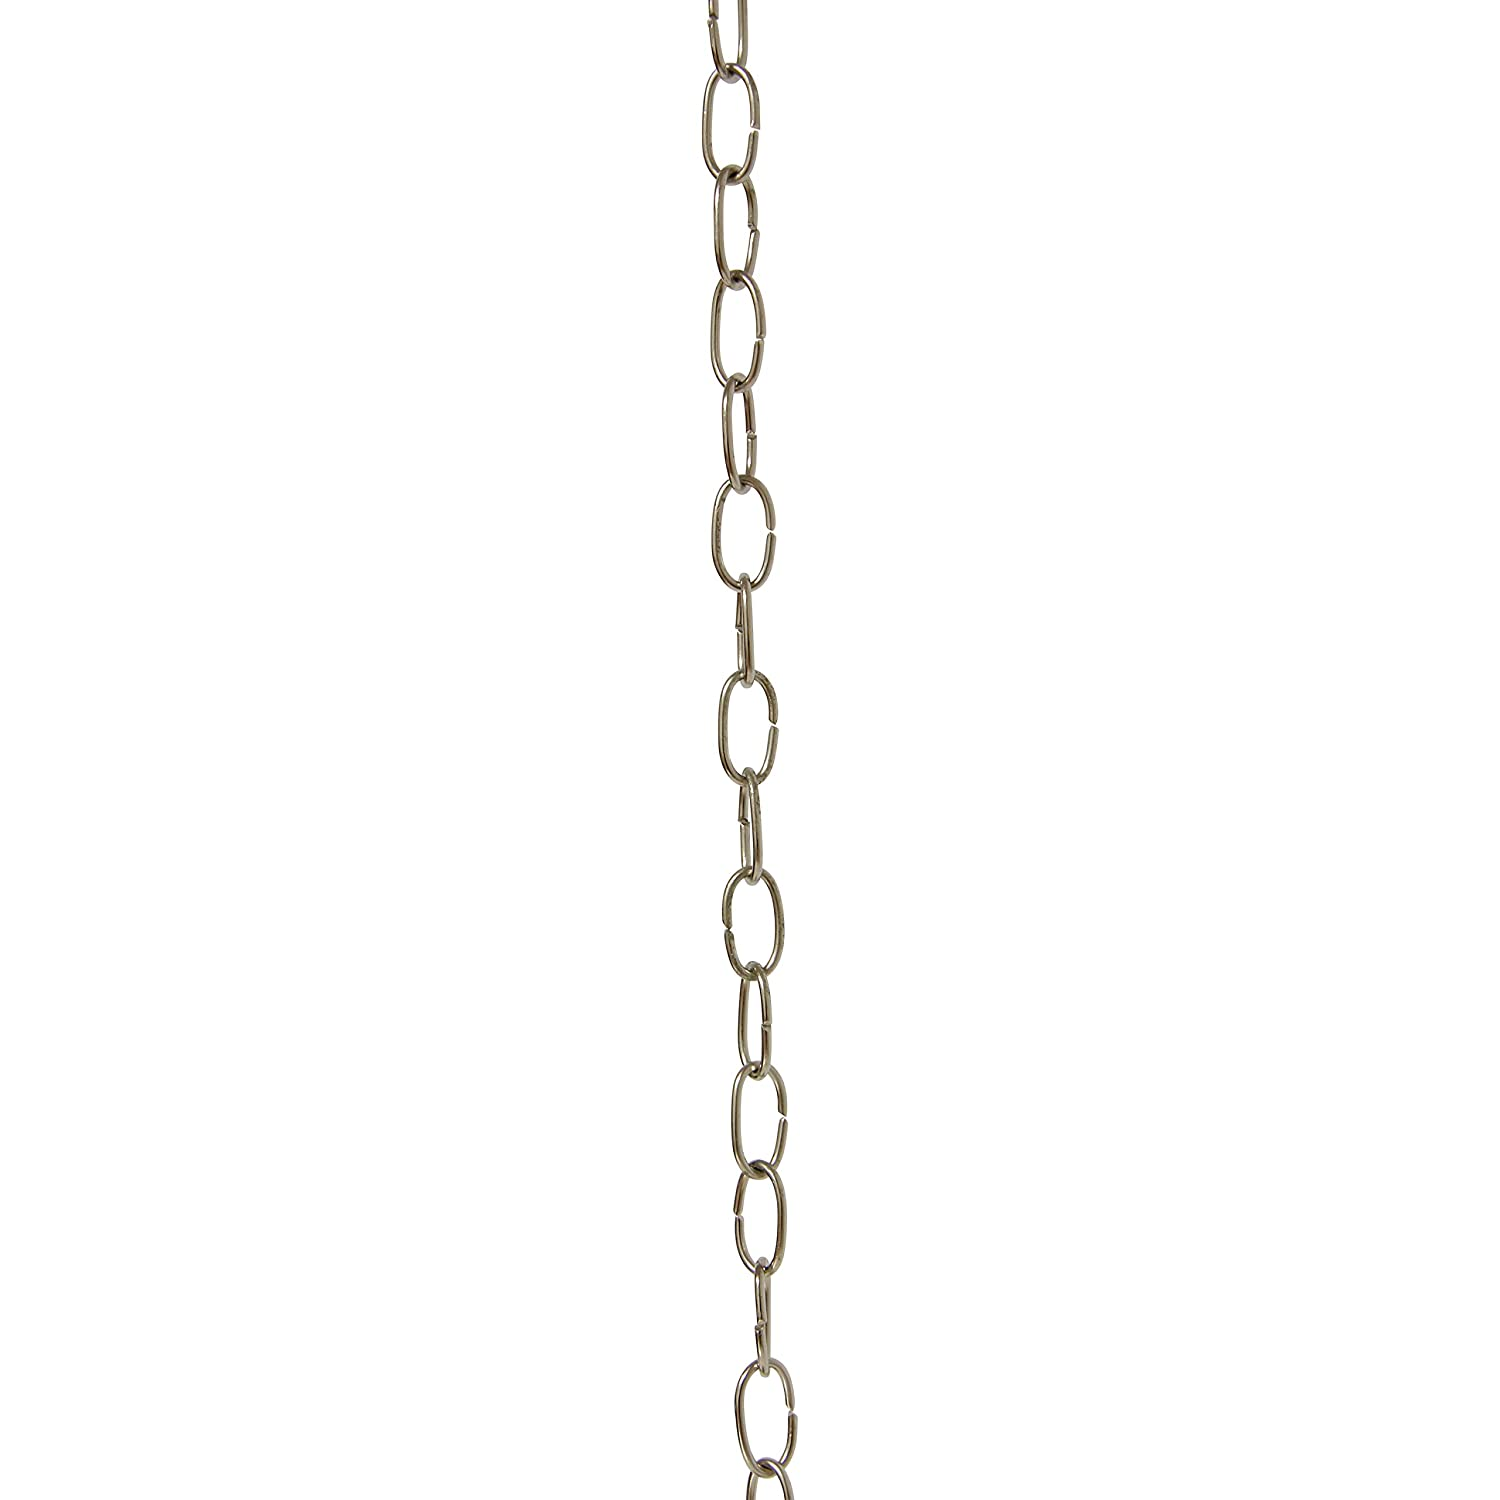 RCH Hardware CH-40-AD Brass Fixture Chain Acid Dipped